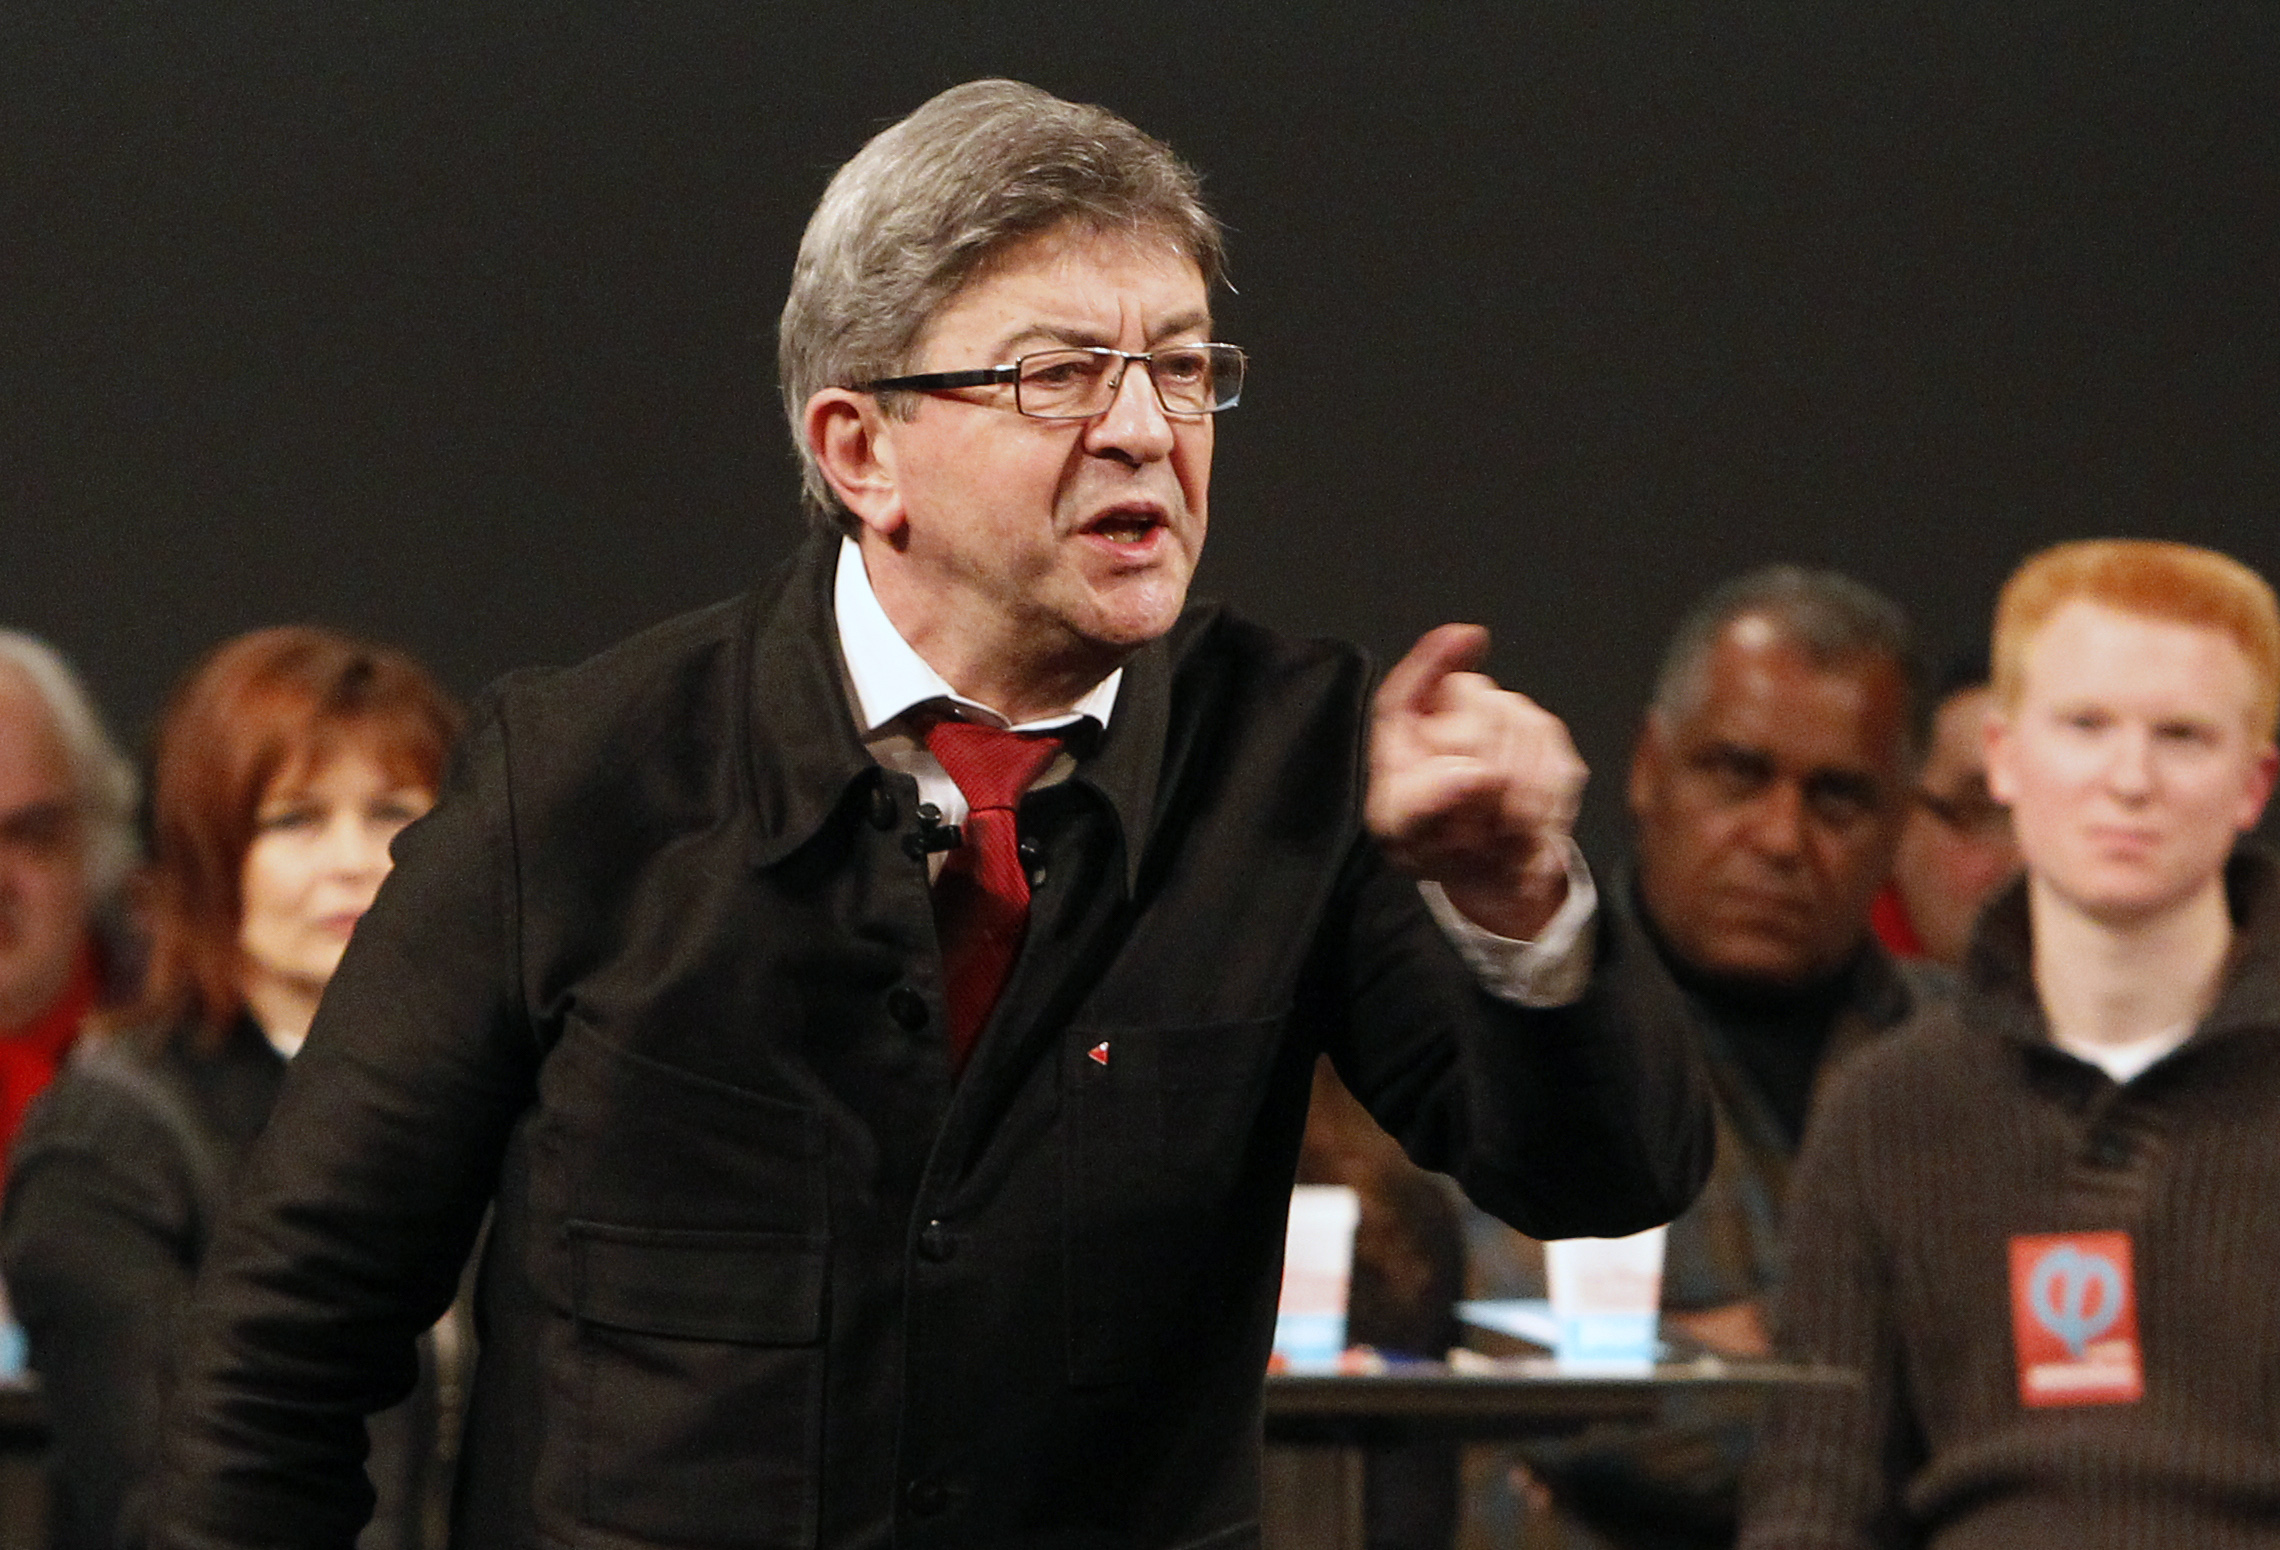 French Left party leader  and candidate for the 2017 French presidential election, Jean-Luc Melenchon  delivers a speech during a meeting in Tourcoing, northern France Jan. 8, 2017. (AP Photo/Michel Spingler)